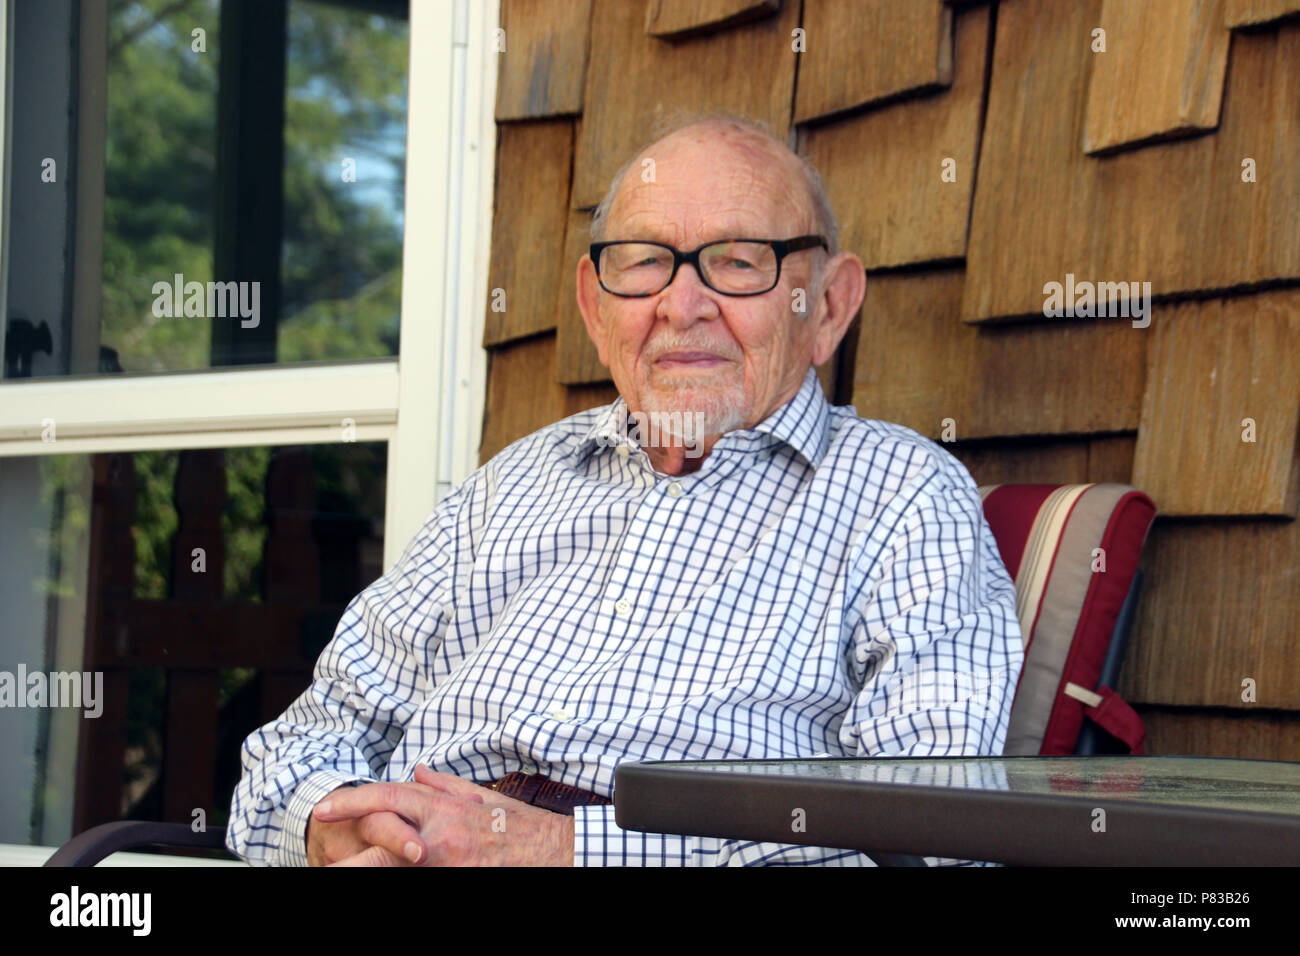 USA, Rhinebeck. 25th July, 2018. Justus Rosenberg, last living helper of Varian Fry sits on a terrace. The university professor helped Varian Fry resuce hundreds of people from national socialist prosecution during the Second World War. Credit: Christina Horsten/dpa/Alamy Live News - Stock Image